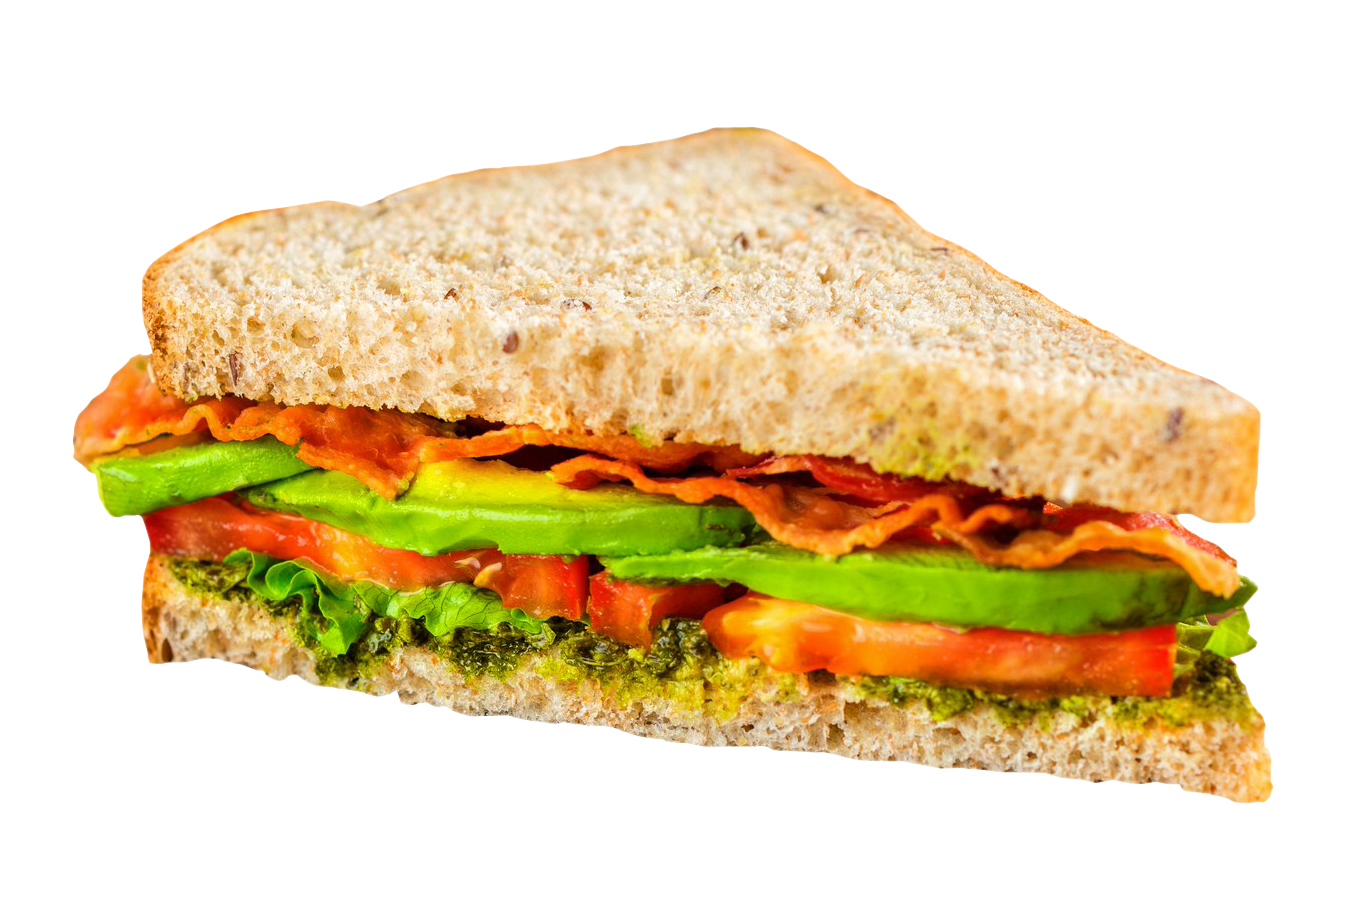 Sandwich Png Image Food Png Sandwiches Food Categories